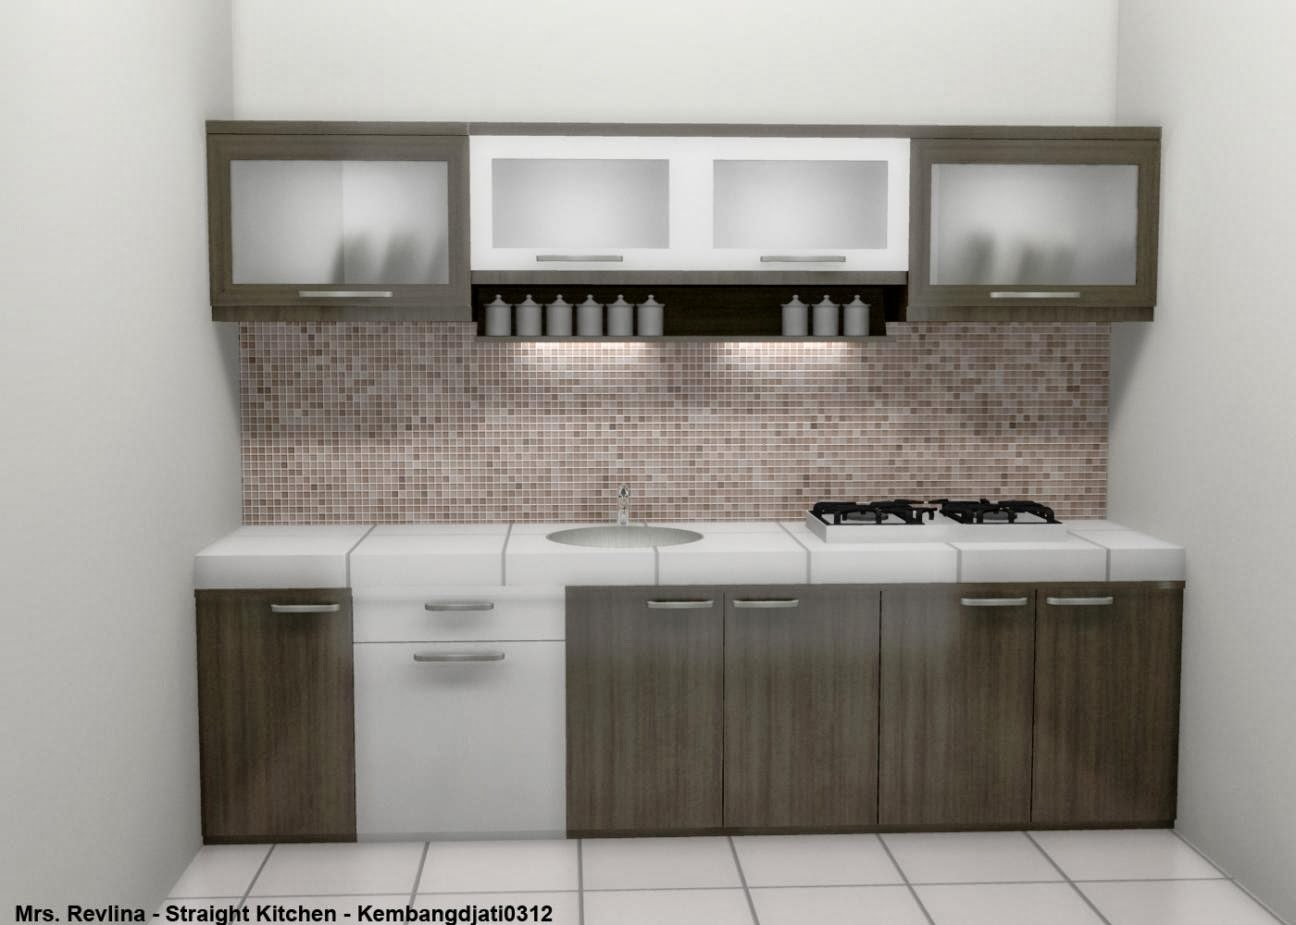 Kombinasi warna keramik dinding dapur best attractive home for Harga kitchen set aluminium minimalis